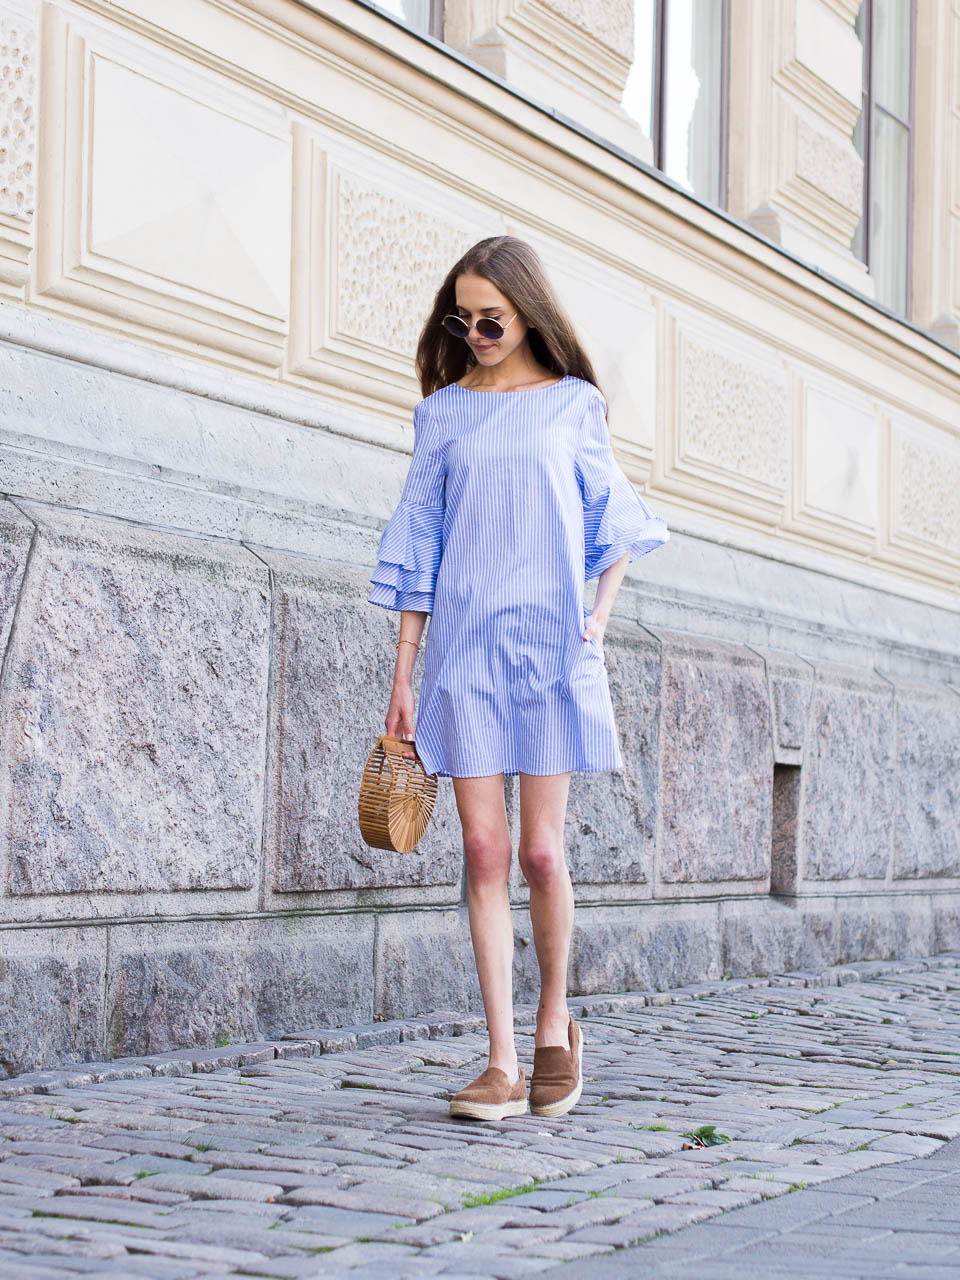 fashion-blogger-summer-outfit-inspirarion